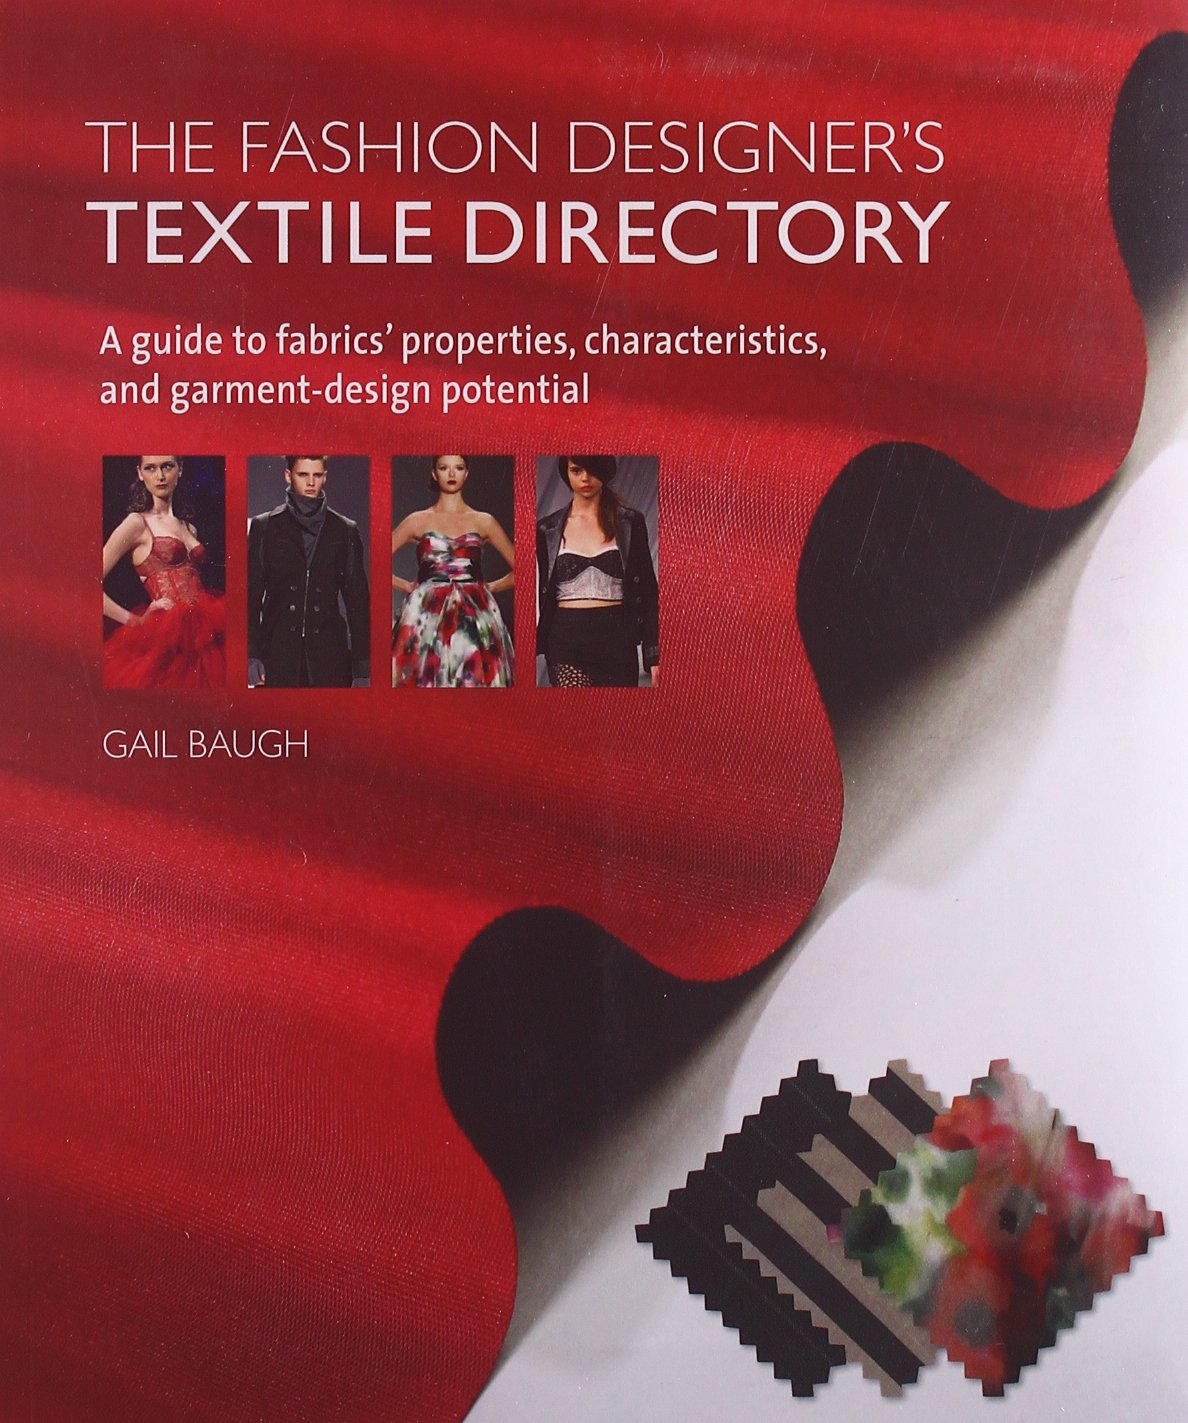 fabric for fashion the swatch book the fashion designer textile directory